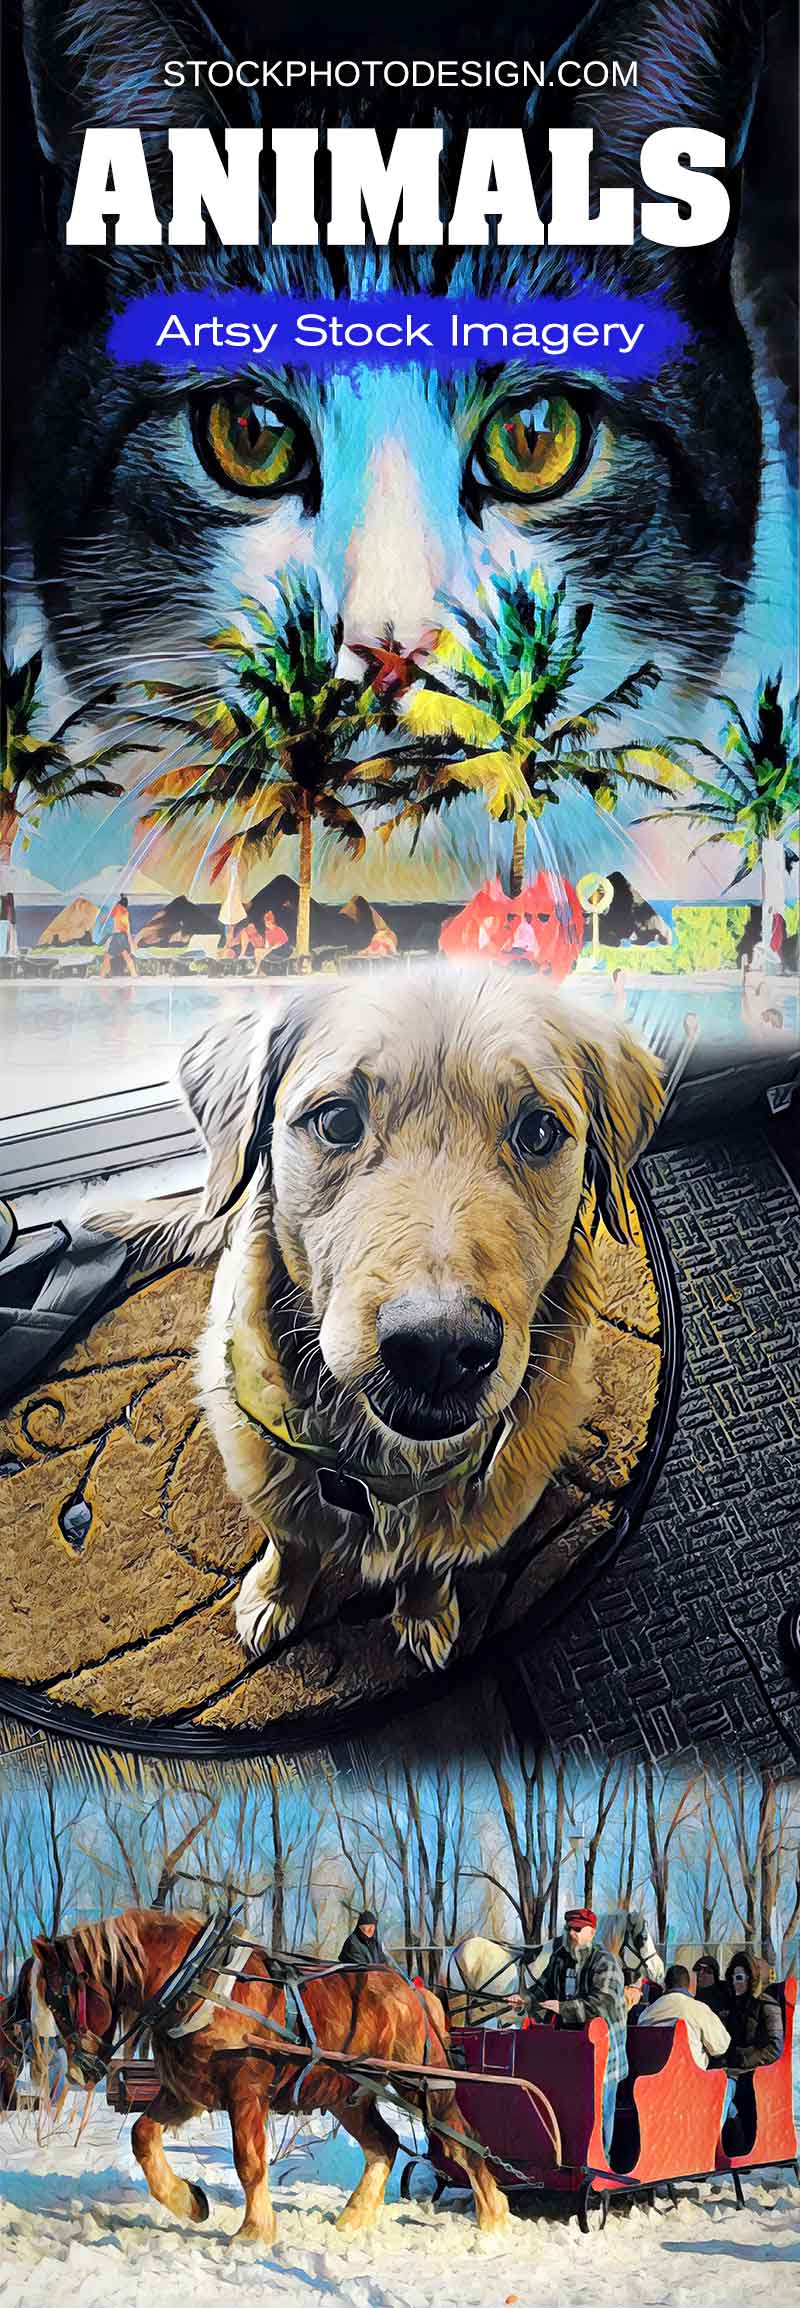 Artsy Stock Animals Images at Great Prices. Stockphotodesign.com